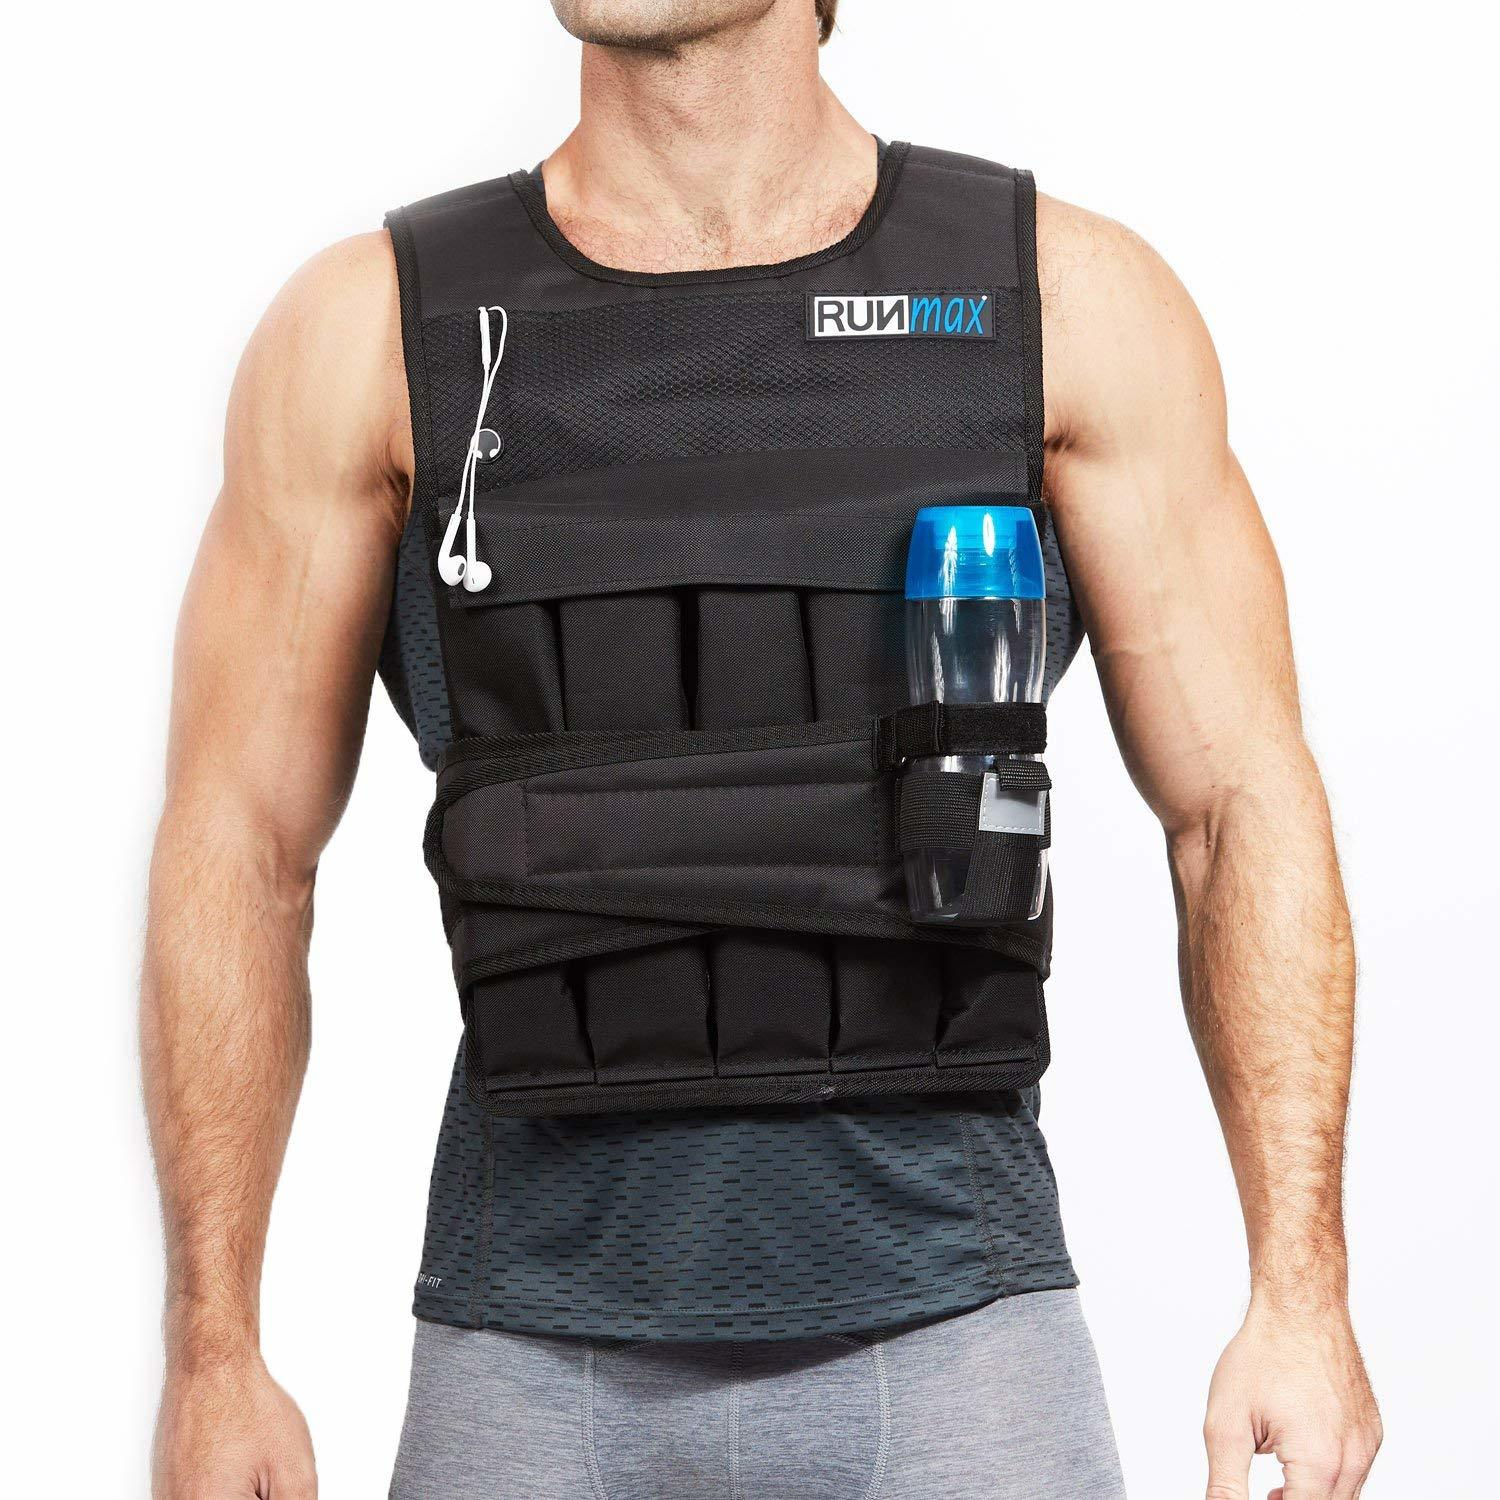 4 best weighted vests for running and crossfit that will change the way U train 1